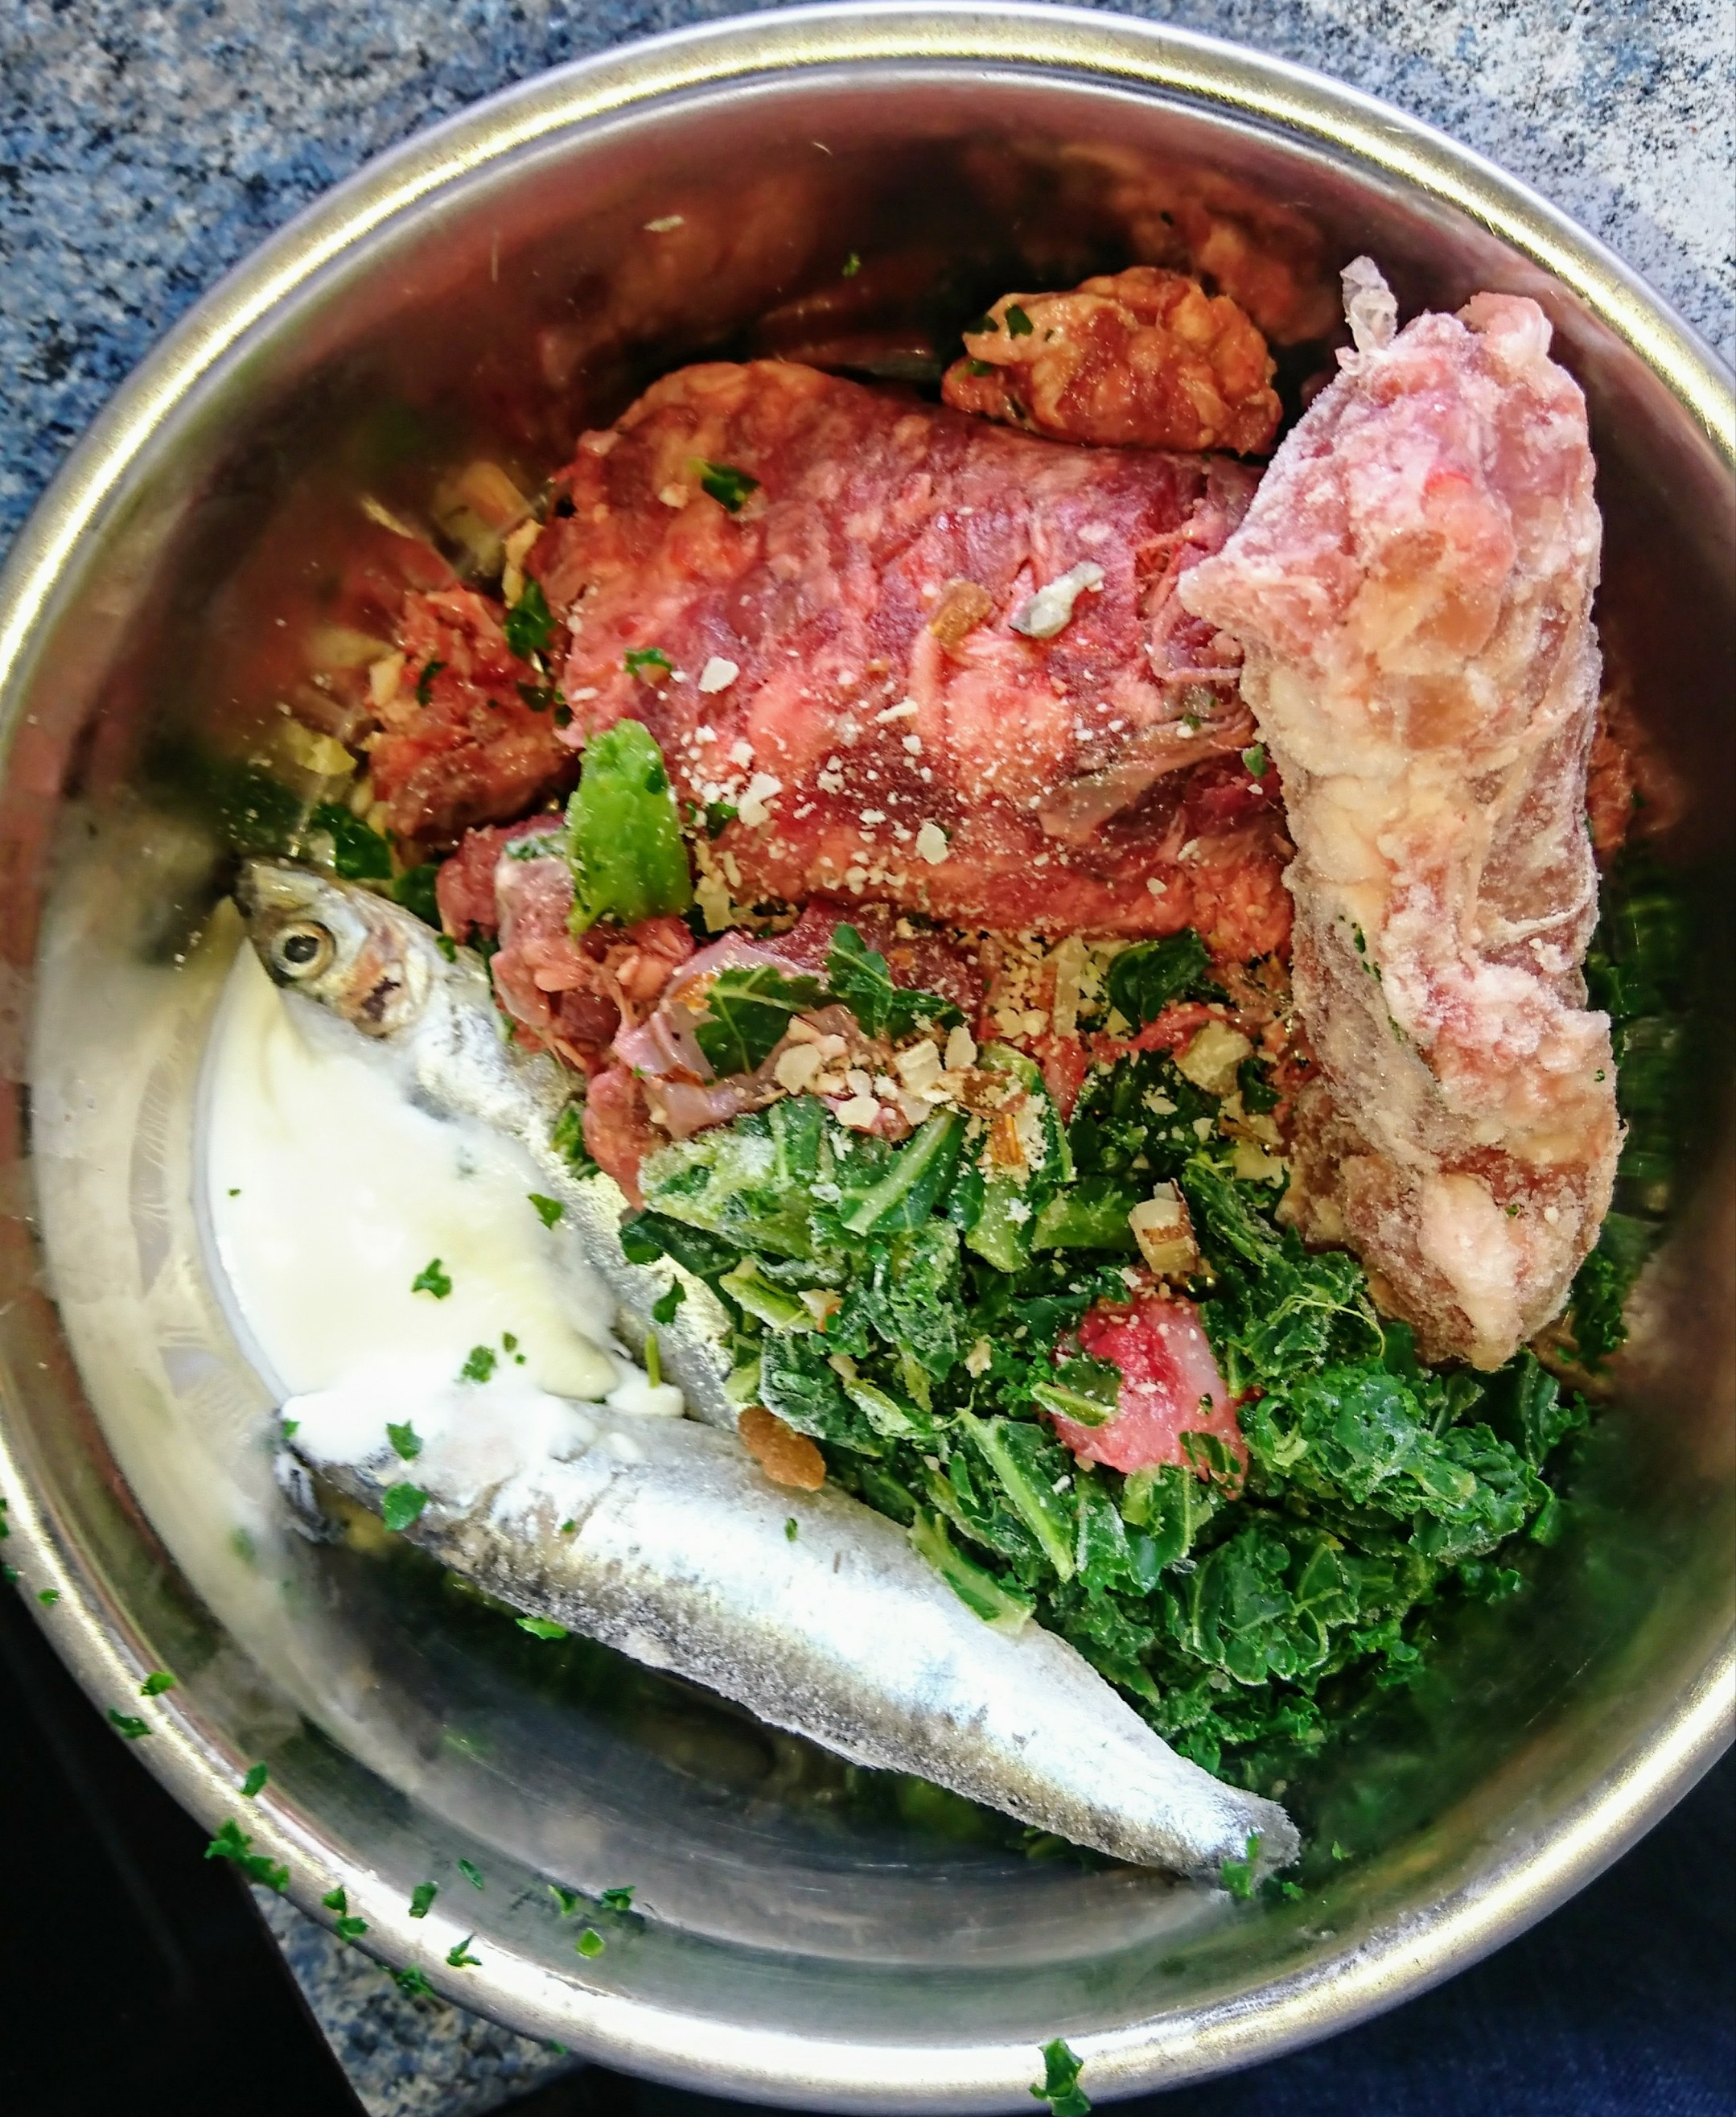 sprats-chicken-neck-kale-fish-yogurt-beef-mince.-